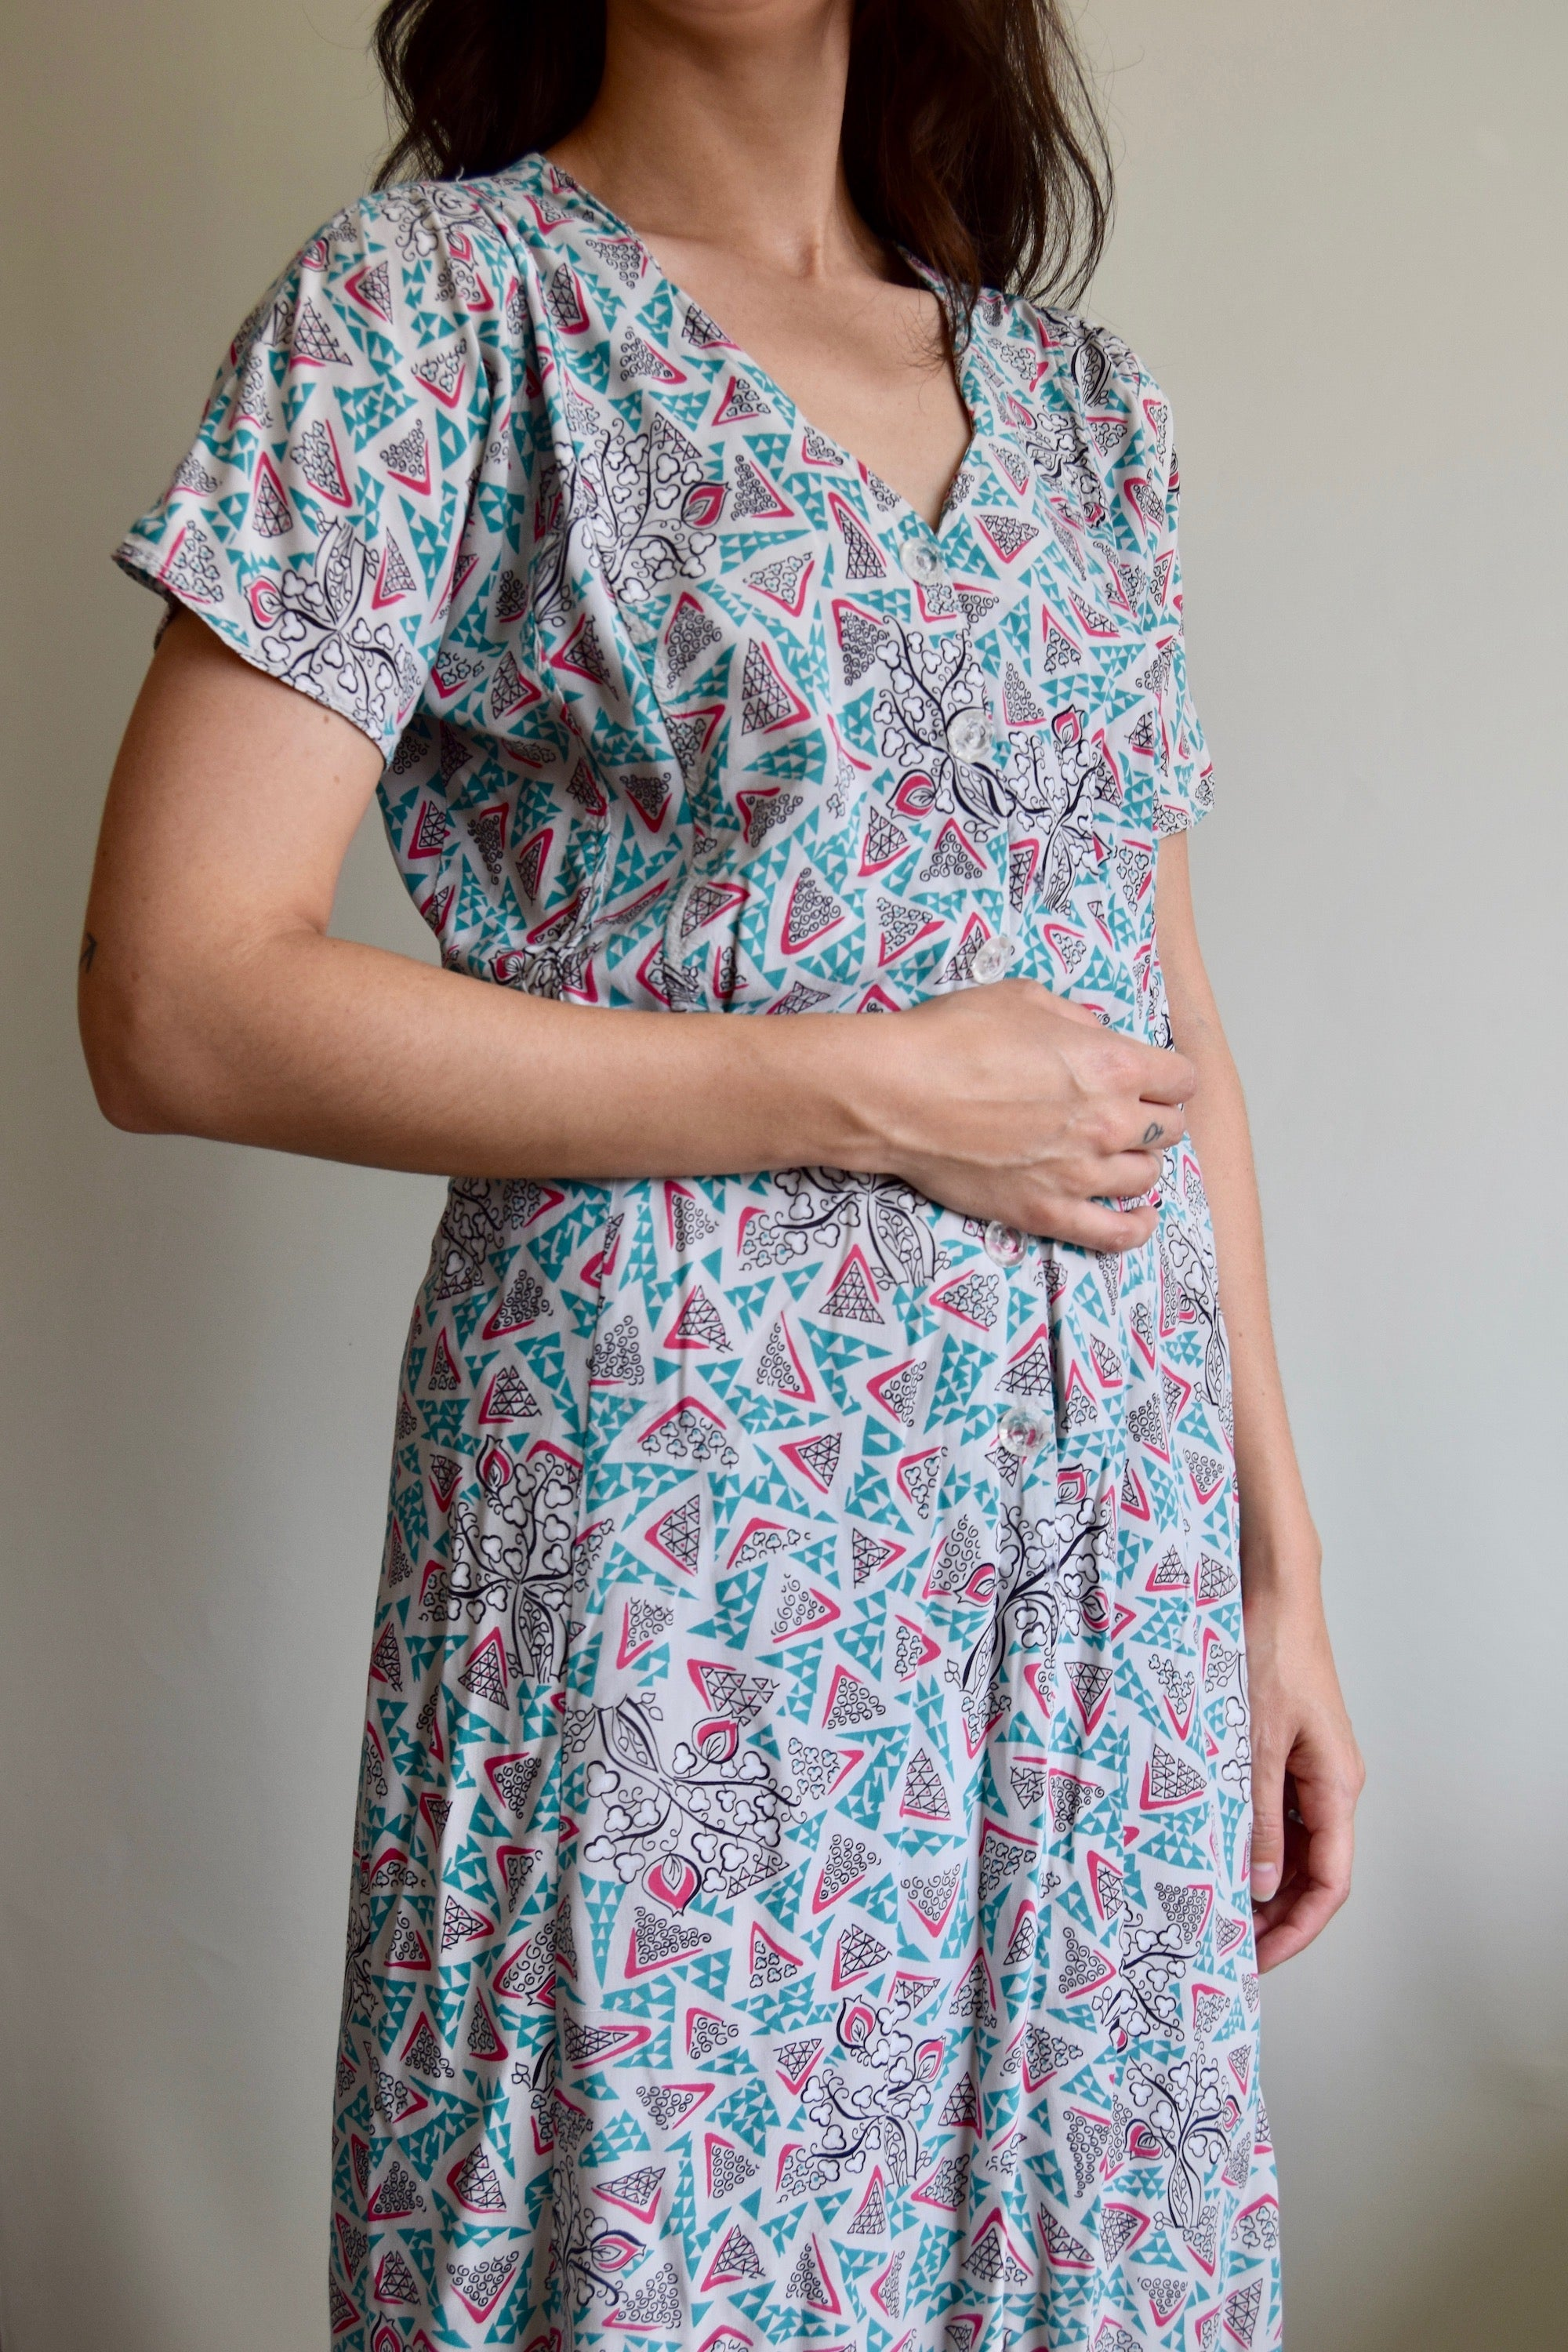 Vintage 1940's Dusted Pastel Abstract Floral Dress FREE SHIPPING TO THE U.S.